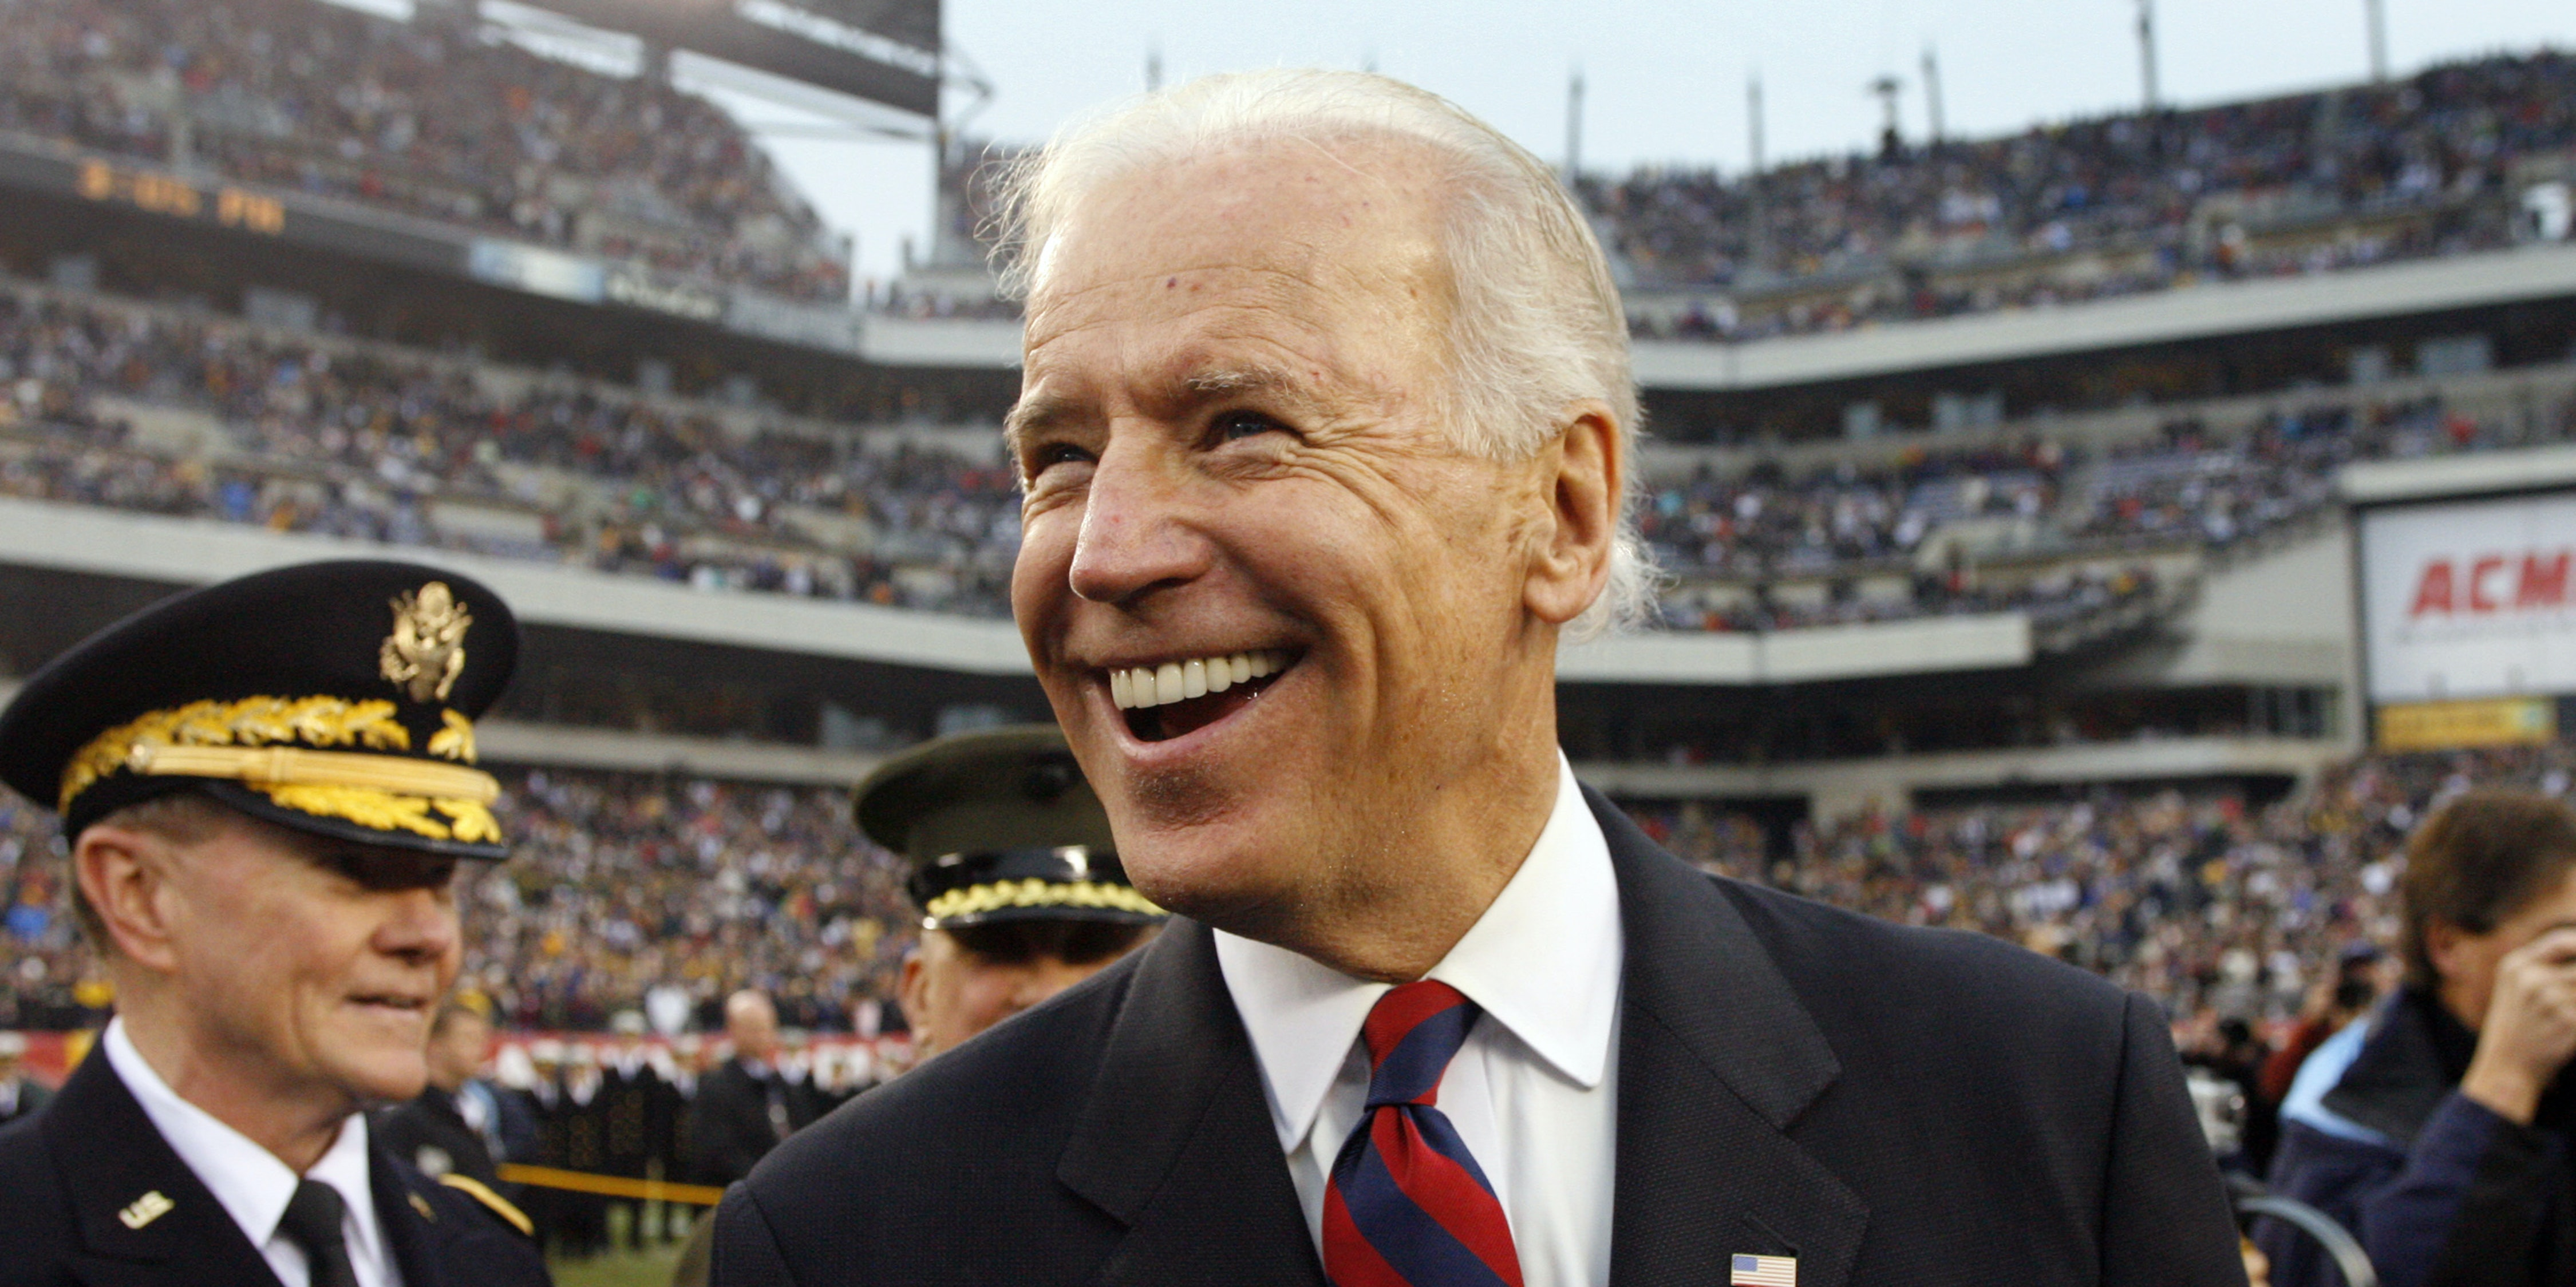 PHILADELPHIA - DECEMBER 8: Vice President of the United States Joe Biden smiles as he stands at midfield during the coin toss before a game between the Army Black Knights and the Navy Midshipmen on December 8, 2012 at Lincoln Financial Field in Philadelphia, Pennsylvania. (Photo by Hunter Martin/Getty Images)